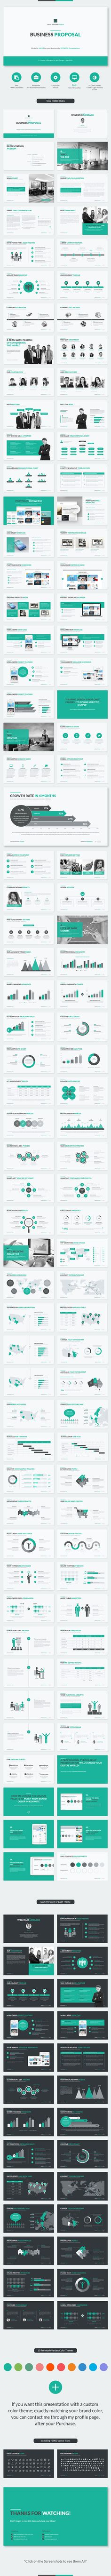 Buy Business Proposal PowerPoint Template by JafarDesigns on GraphicRiver. Every thing you need to create and design a presentation for Business Proposal or Business Plan is included to the te. Layout Design, Graphisches Design, Slide Design, Modern Design, Keynote Design, Brochure Design, Keynote Presentation, Design Presentation, Presentation Templates